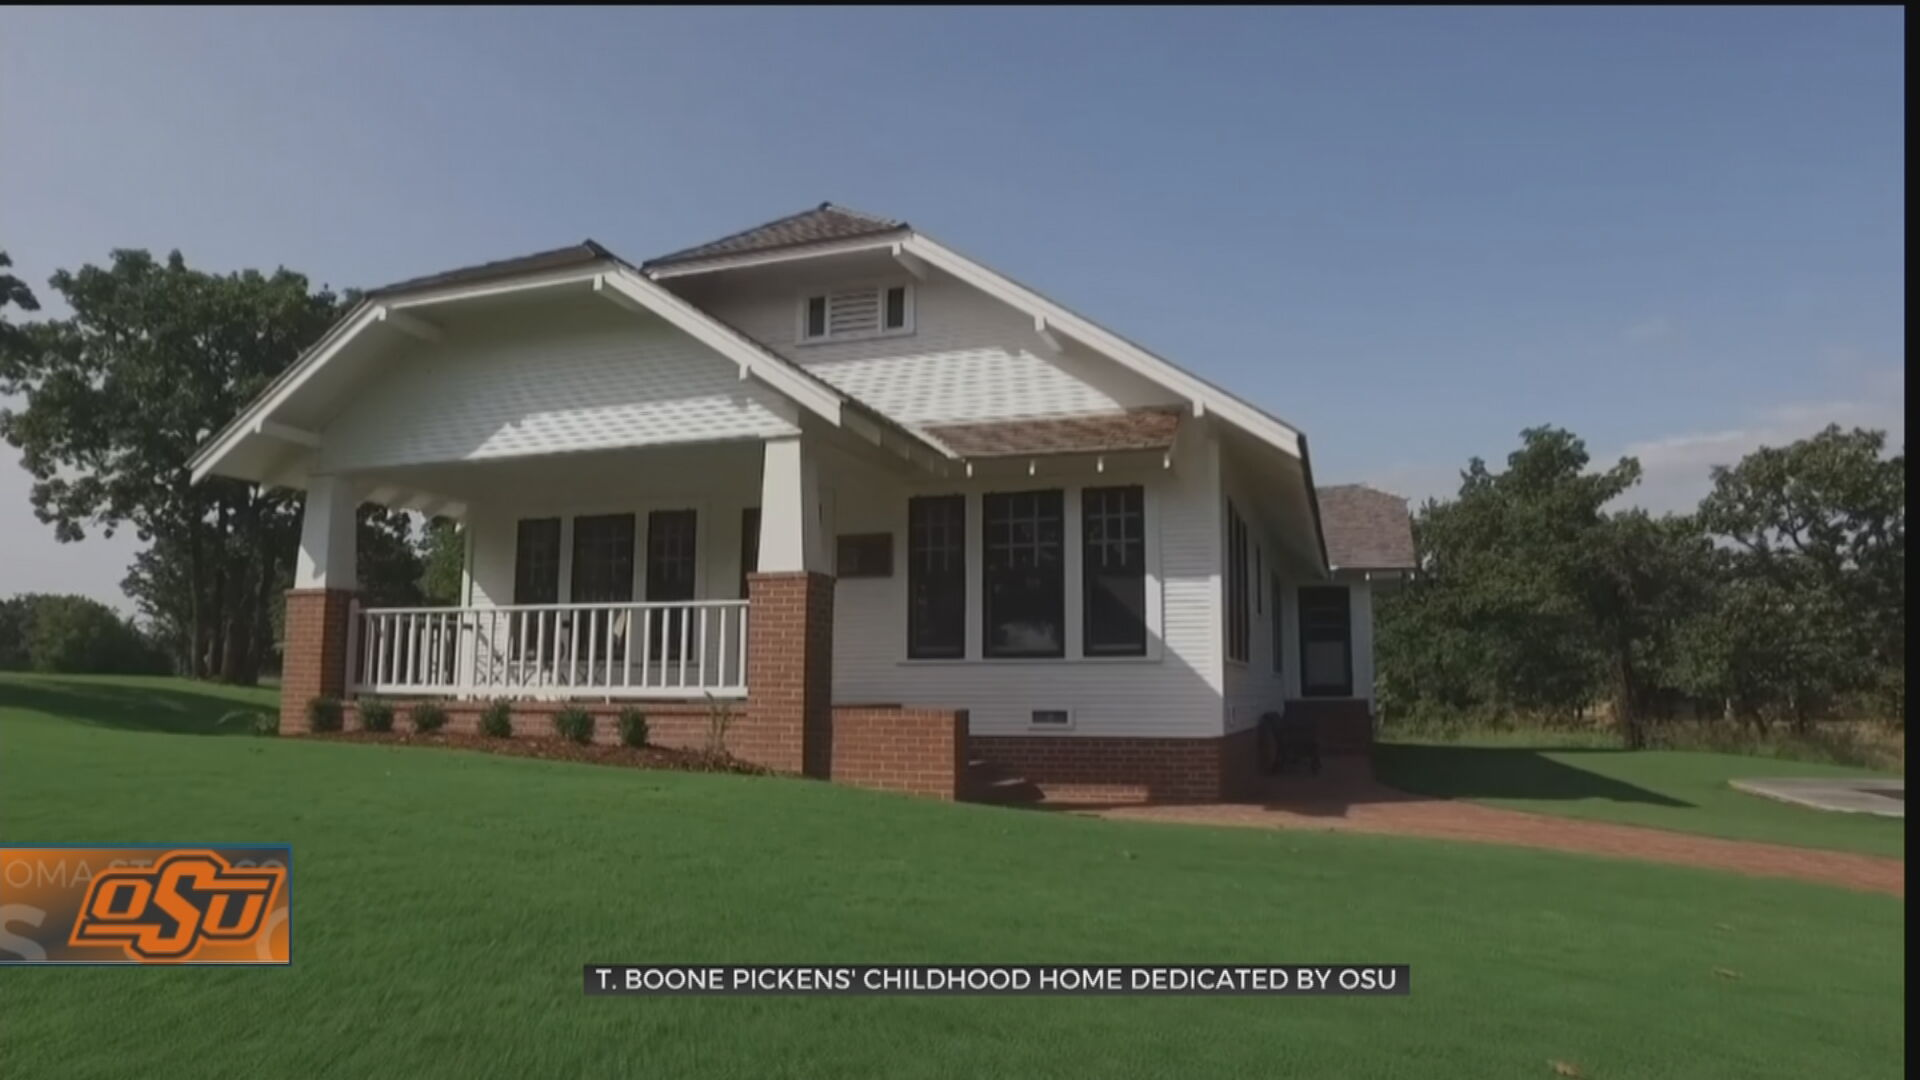 Childhood Home Of T. Boone Pickens Dedicated By OSU